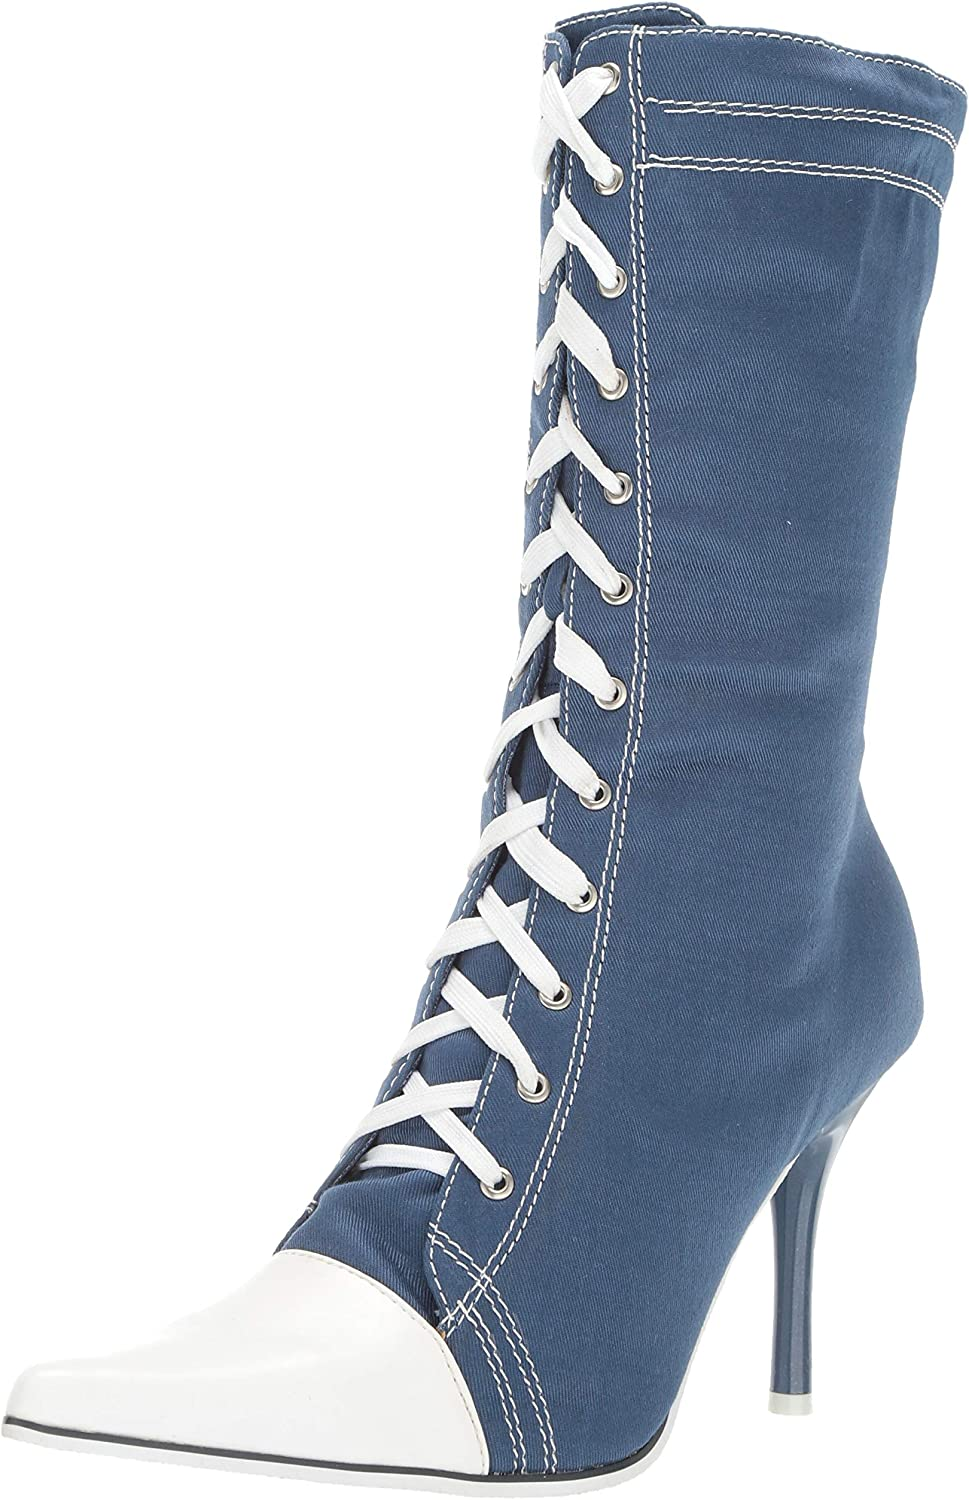 Ellie shoes Womens 457-taylor Fashion Boot